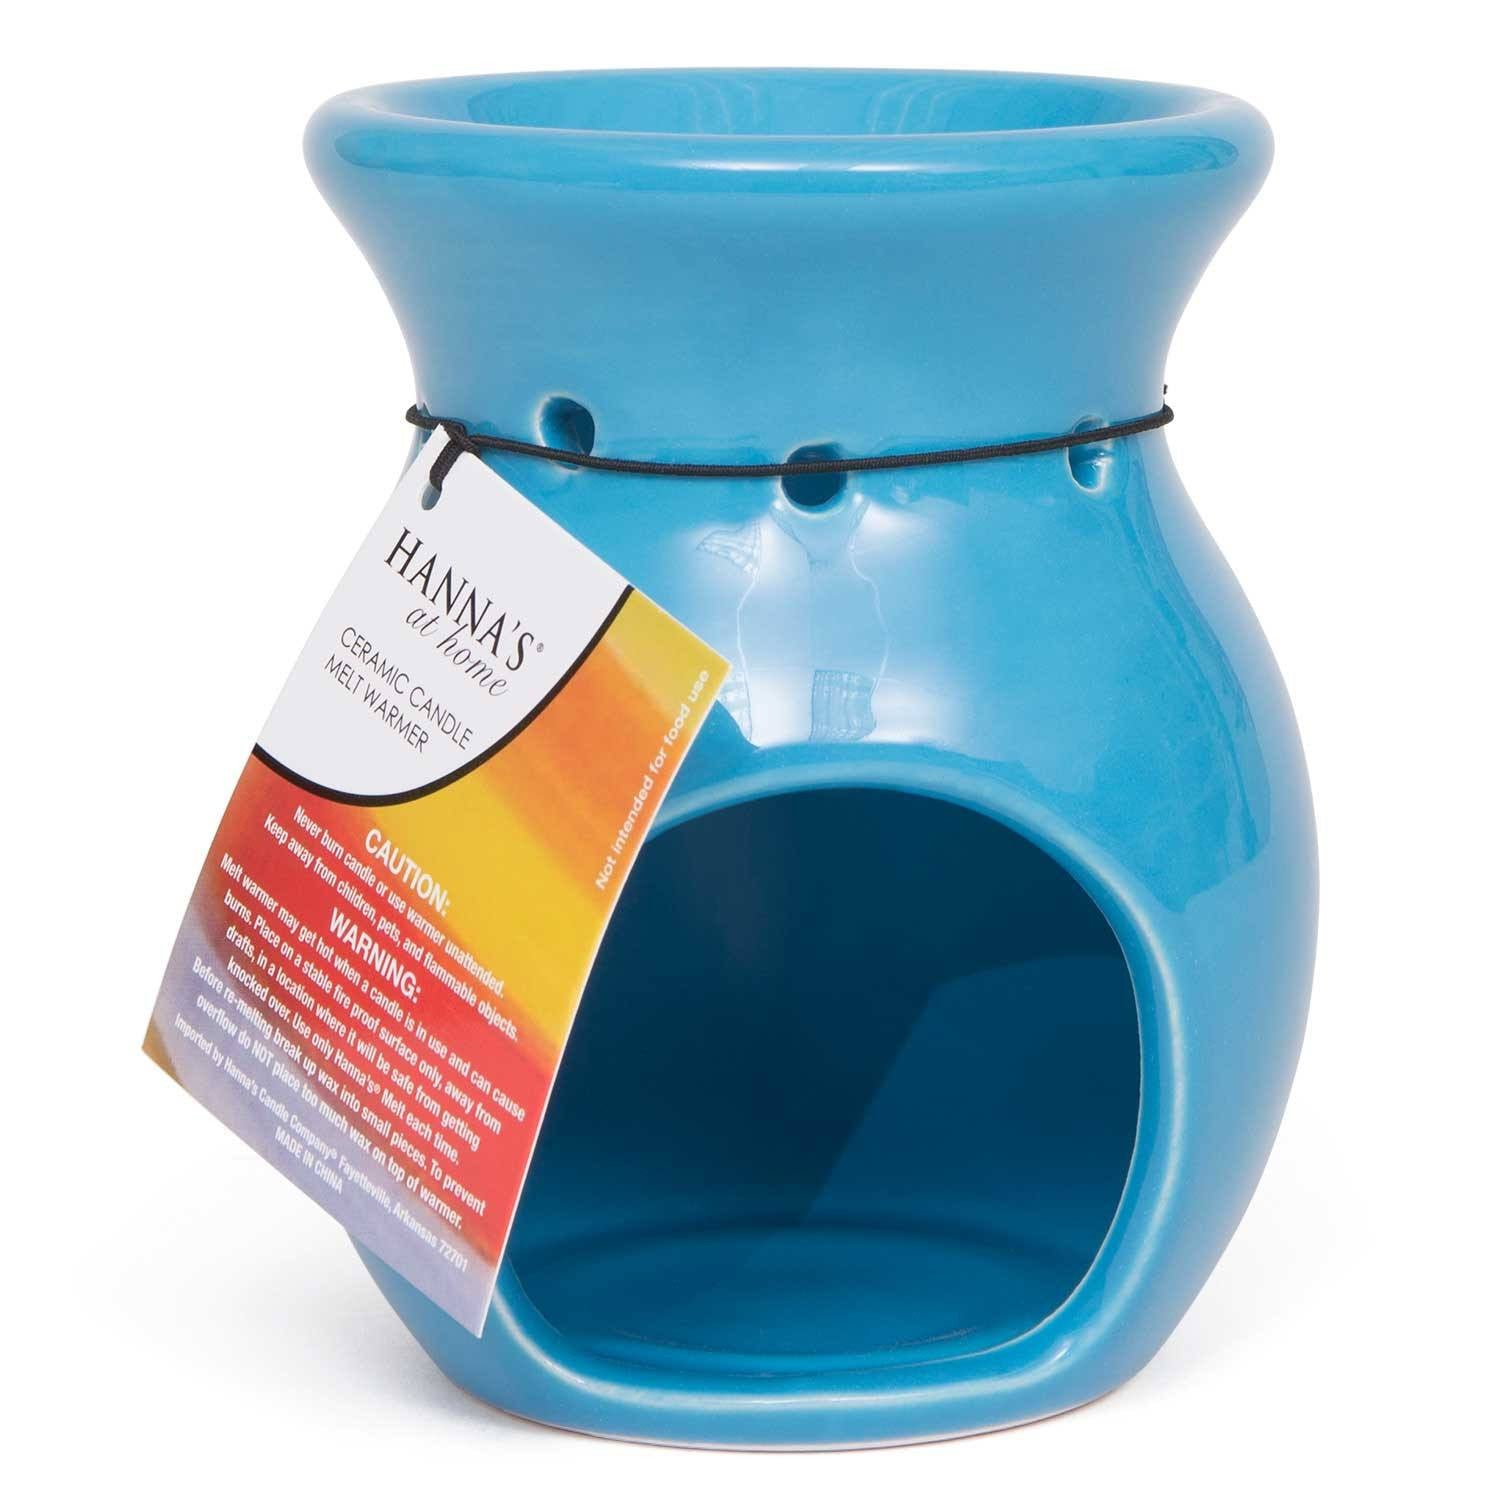 Blue Curve Ceramic Tealight Melt Warmer - Candlemart.com